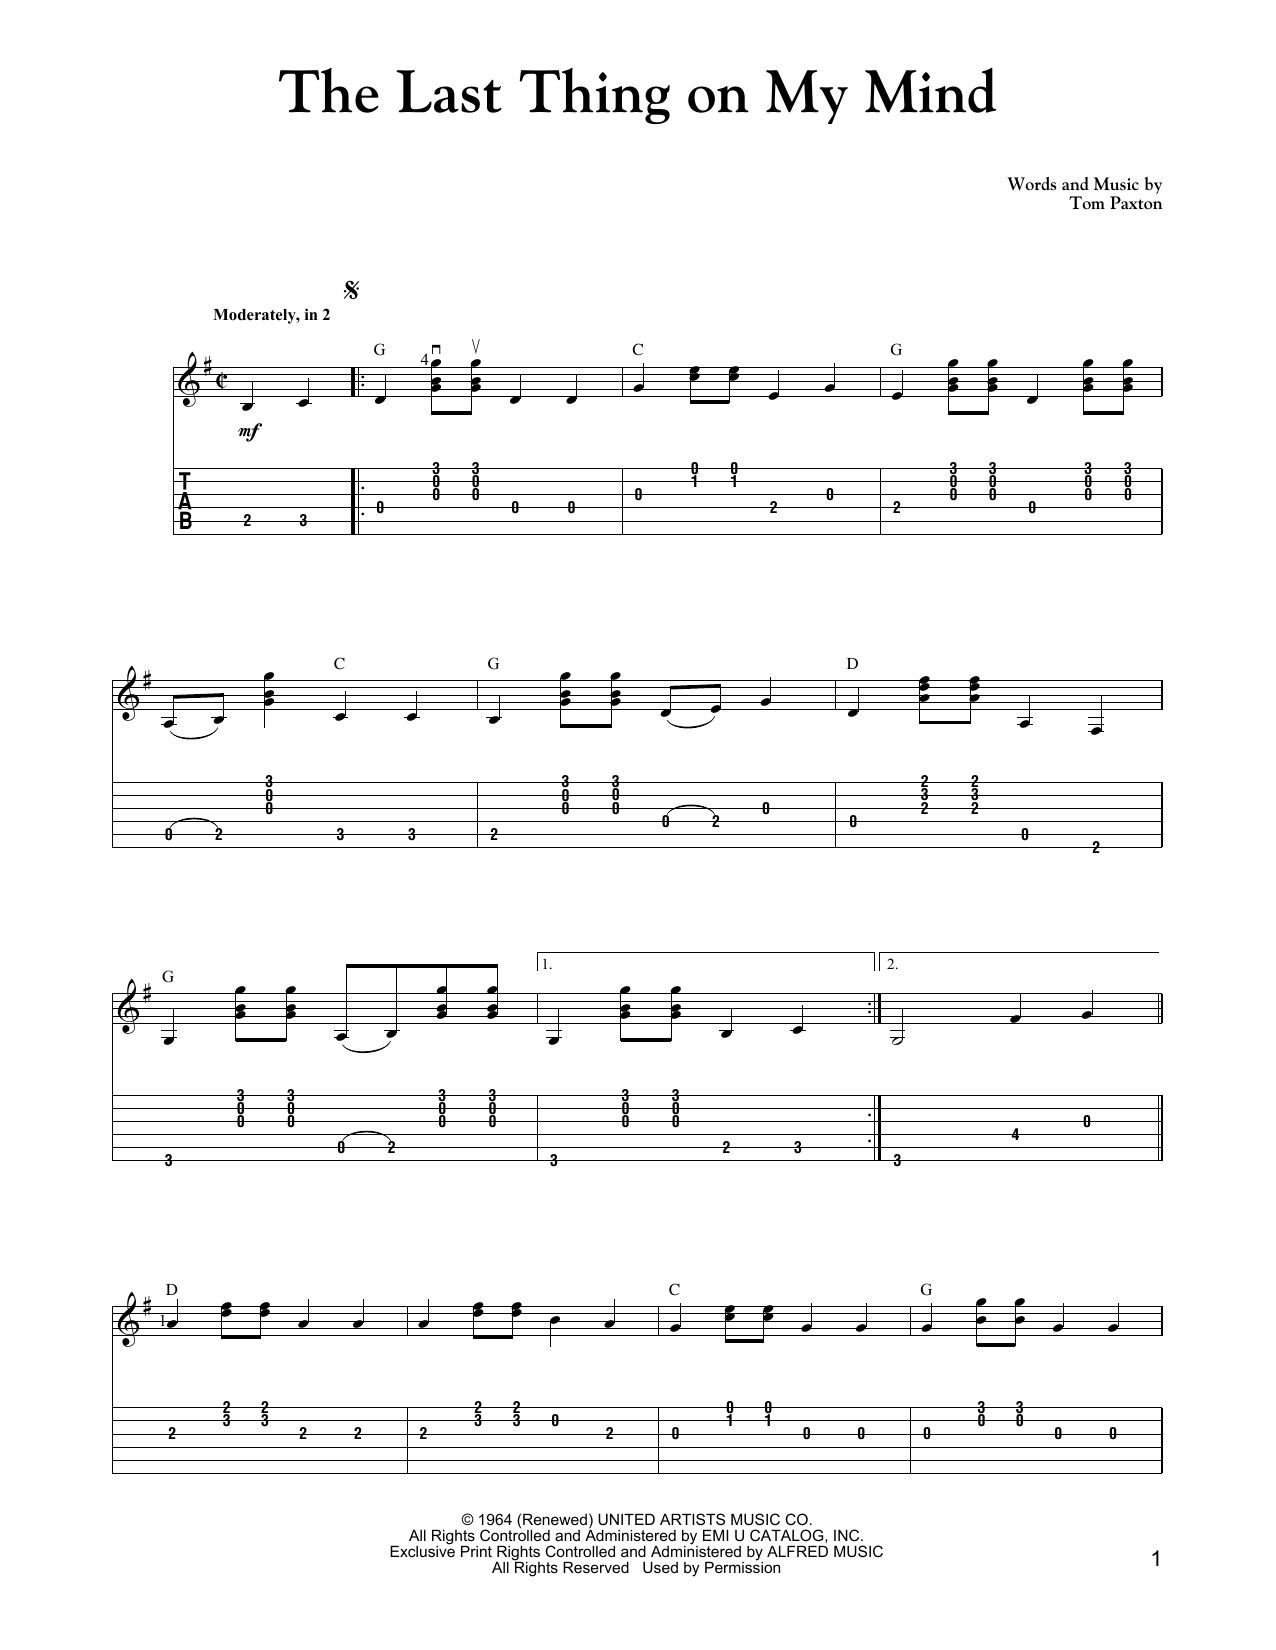 Carter Style Guitar The Last Thing On My Mind Sheet Music Notes, Chords    Download Printable Guitar Tab PDF Score   SKU 15